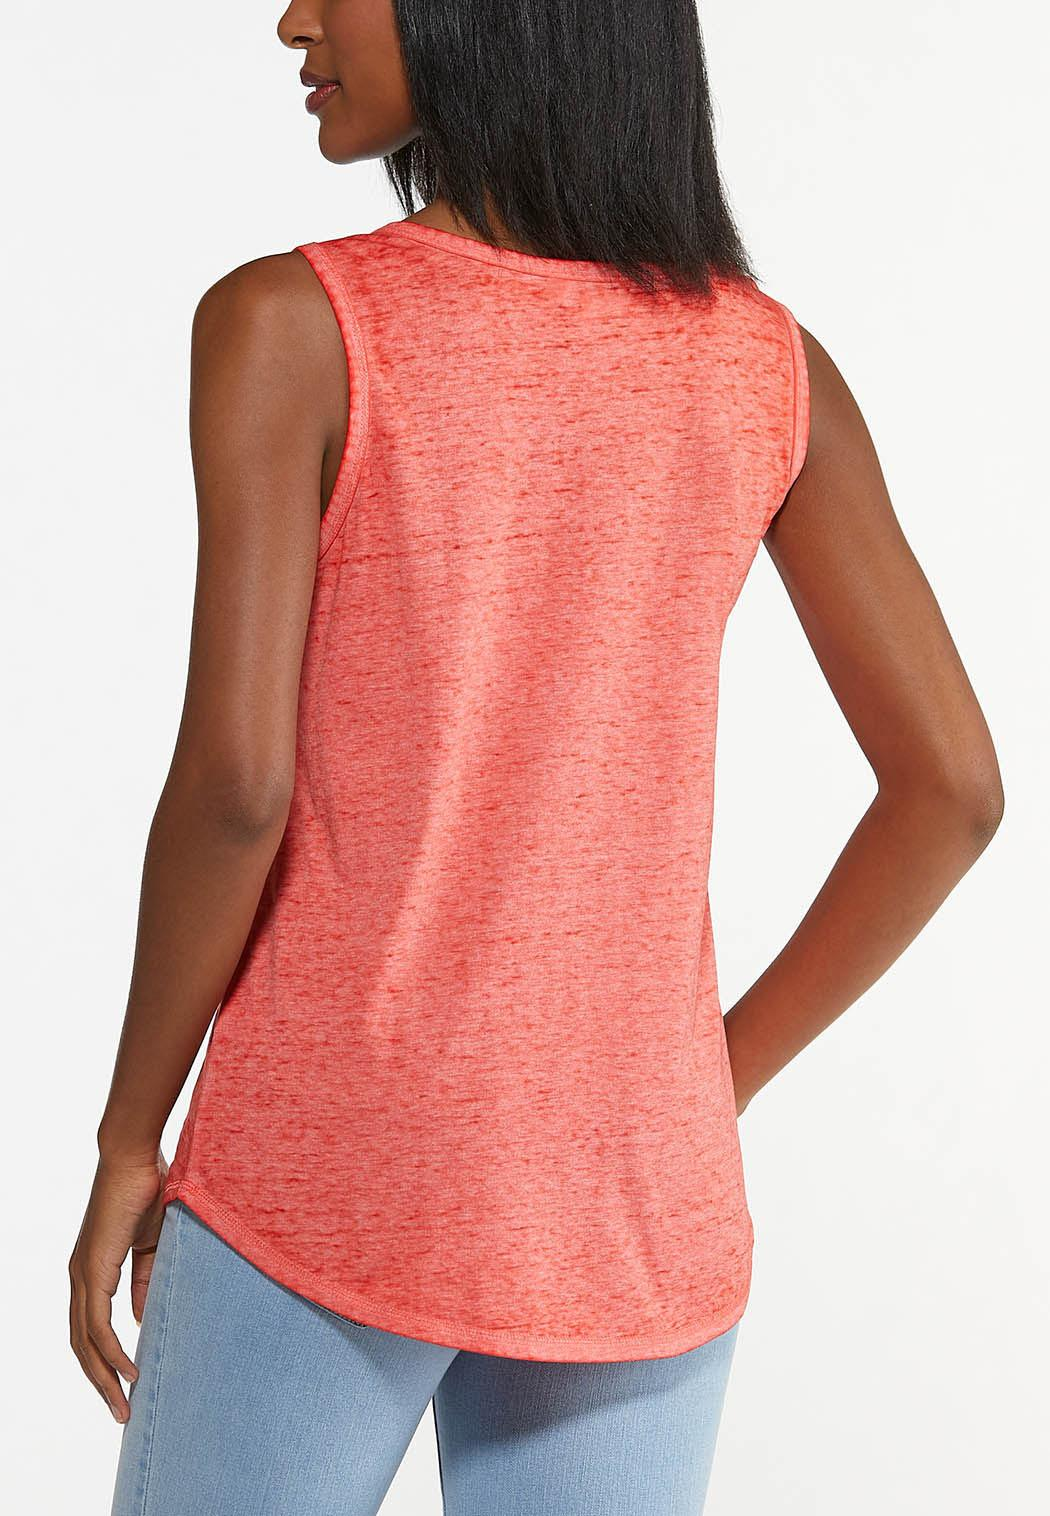 Plus Size Say Yes To Adventure Tank (Item #44621520)